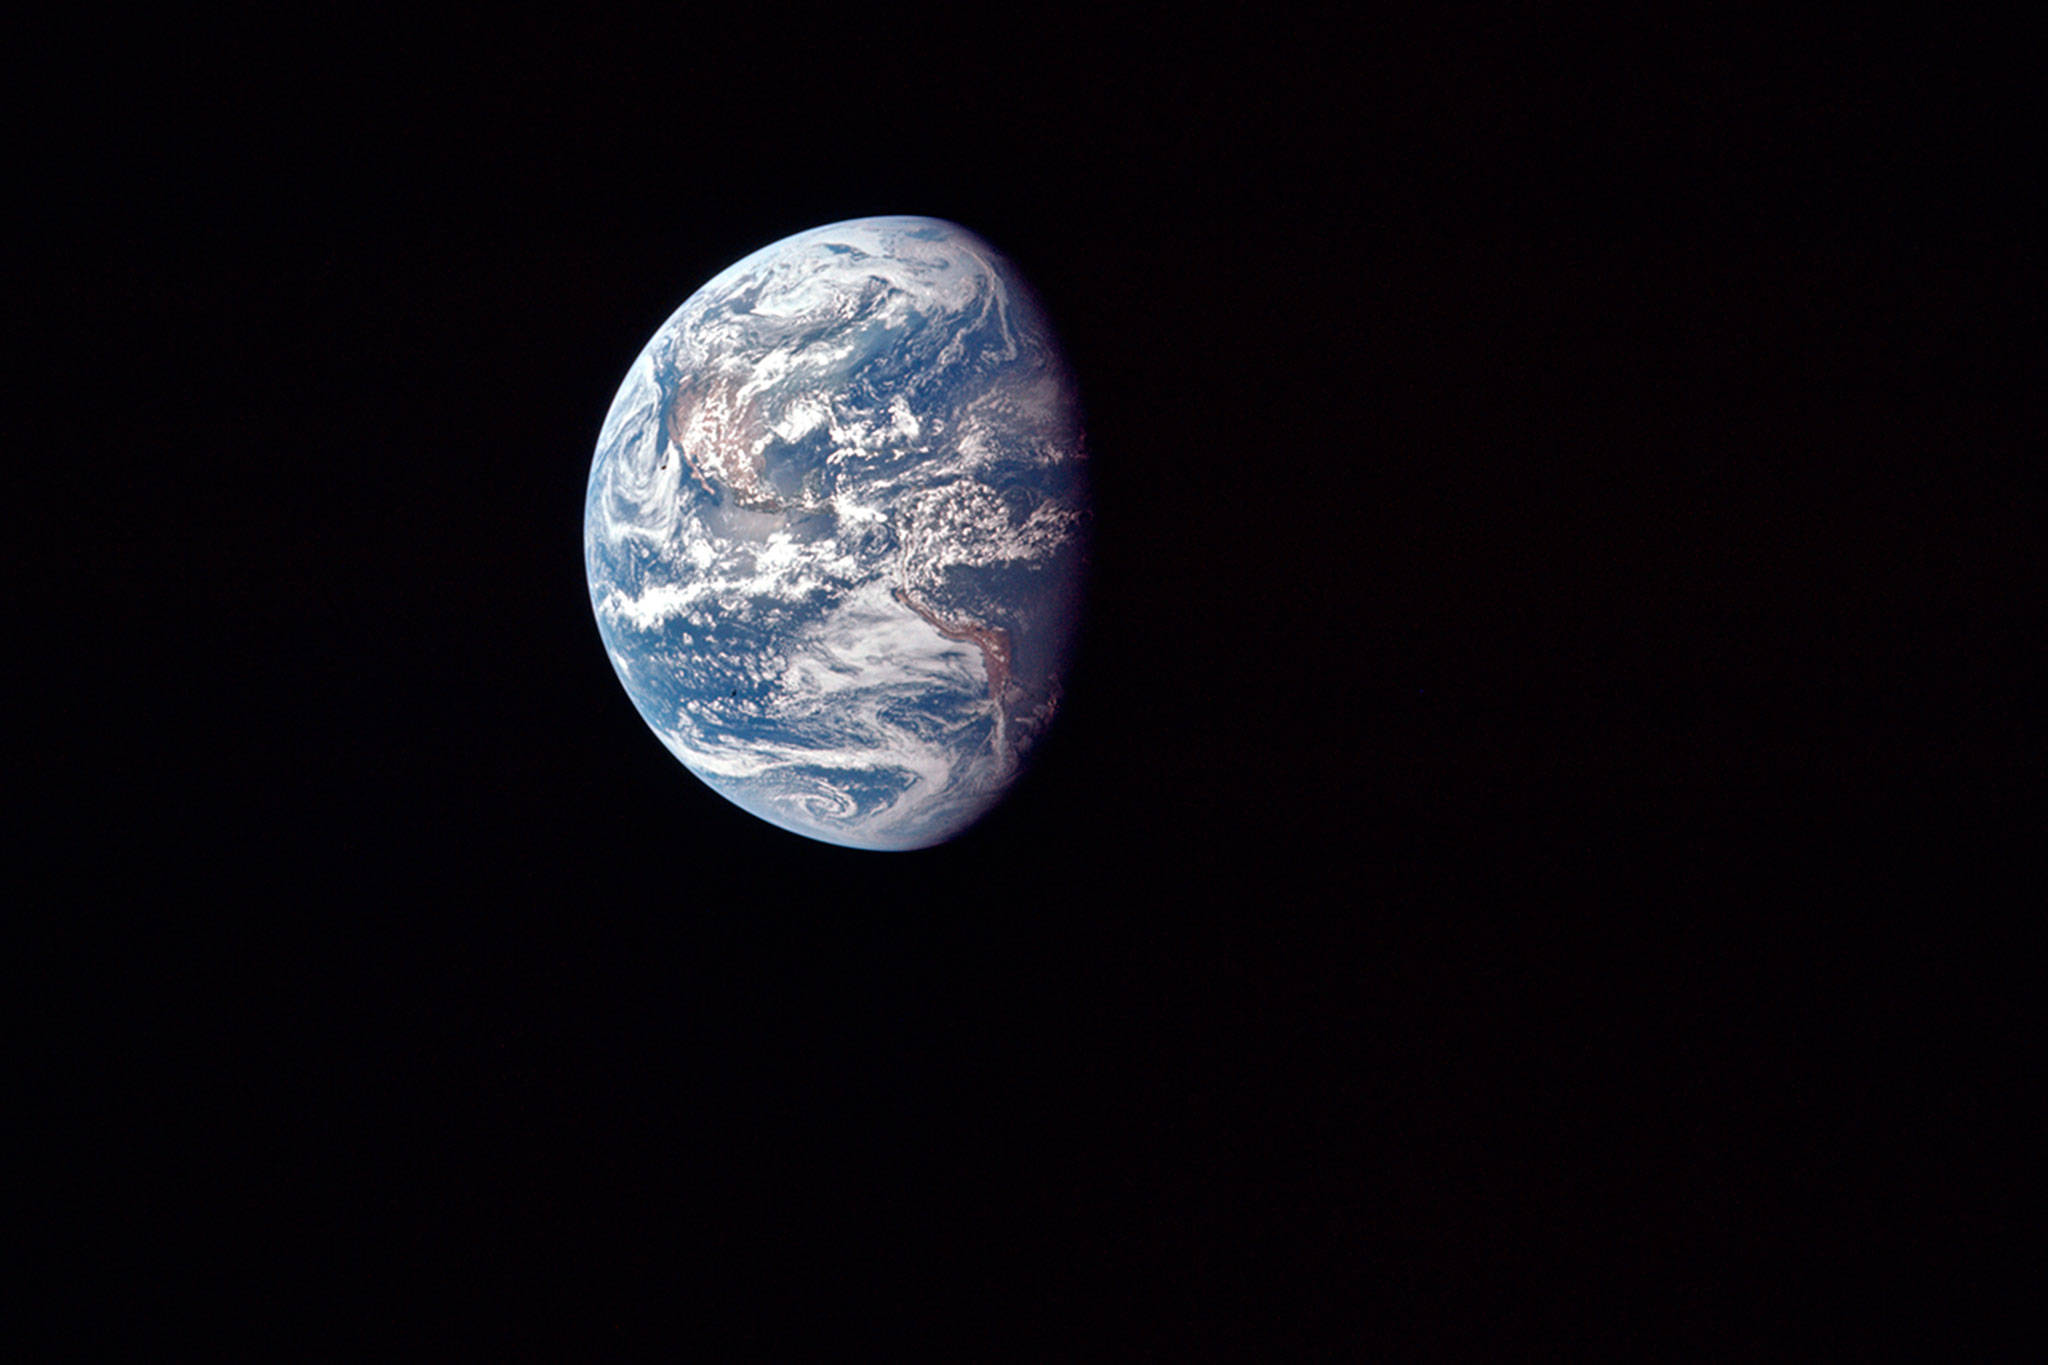 This July 17, 1969 photo made available by NASA shows the Earth as the Apollo 11 mission travels toward the moon. It's estimated that about 600 million people around the world watched as Neil Armstrong and Buzz Aldrin landed on the moon in 1969. (NASA via AP)